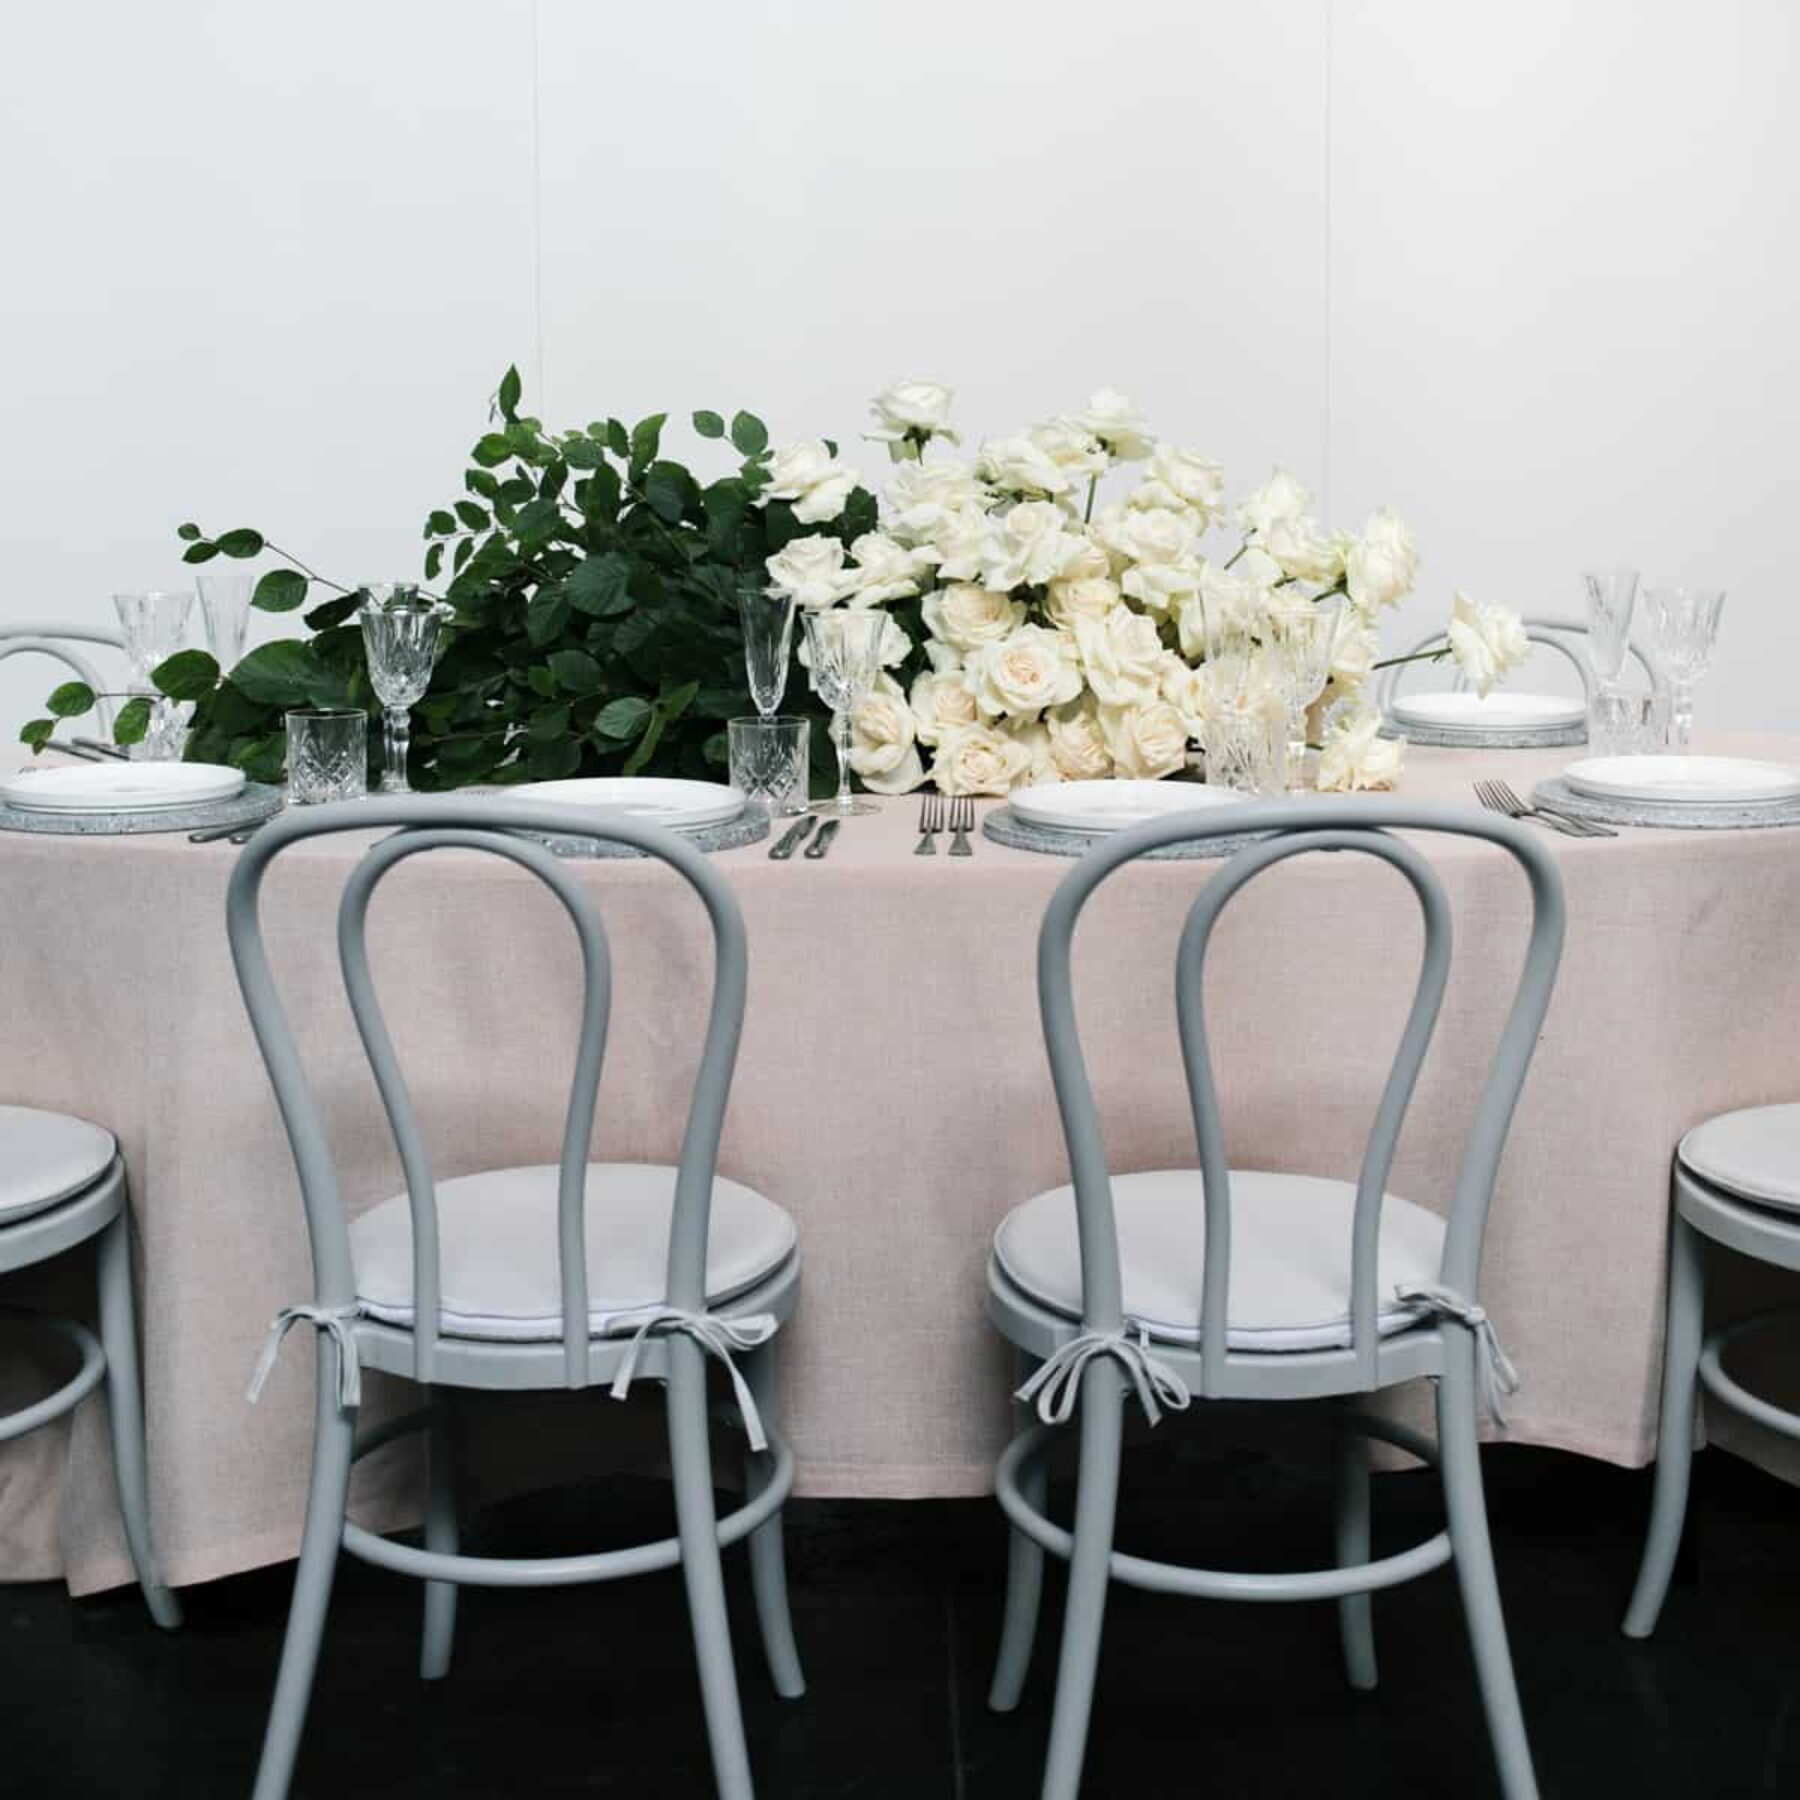 grey bentwood chairs - Dann Event Hire Melbourne